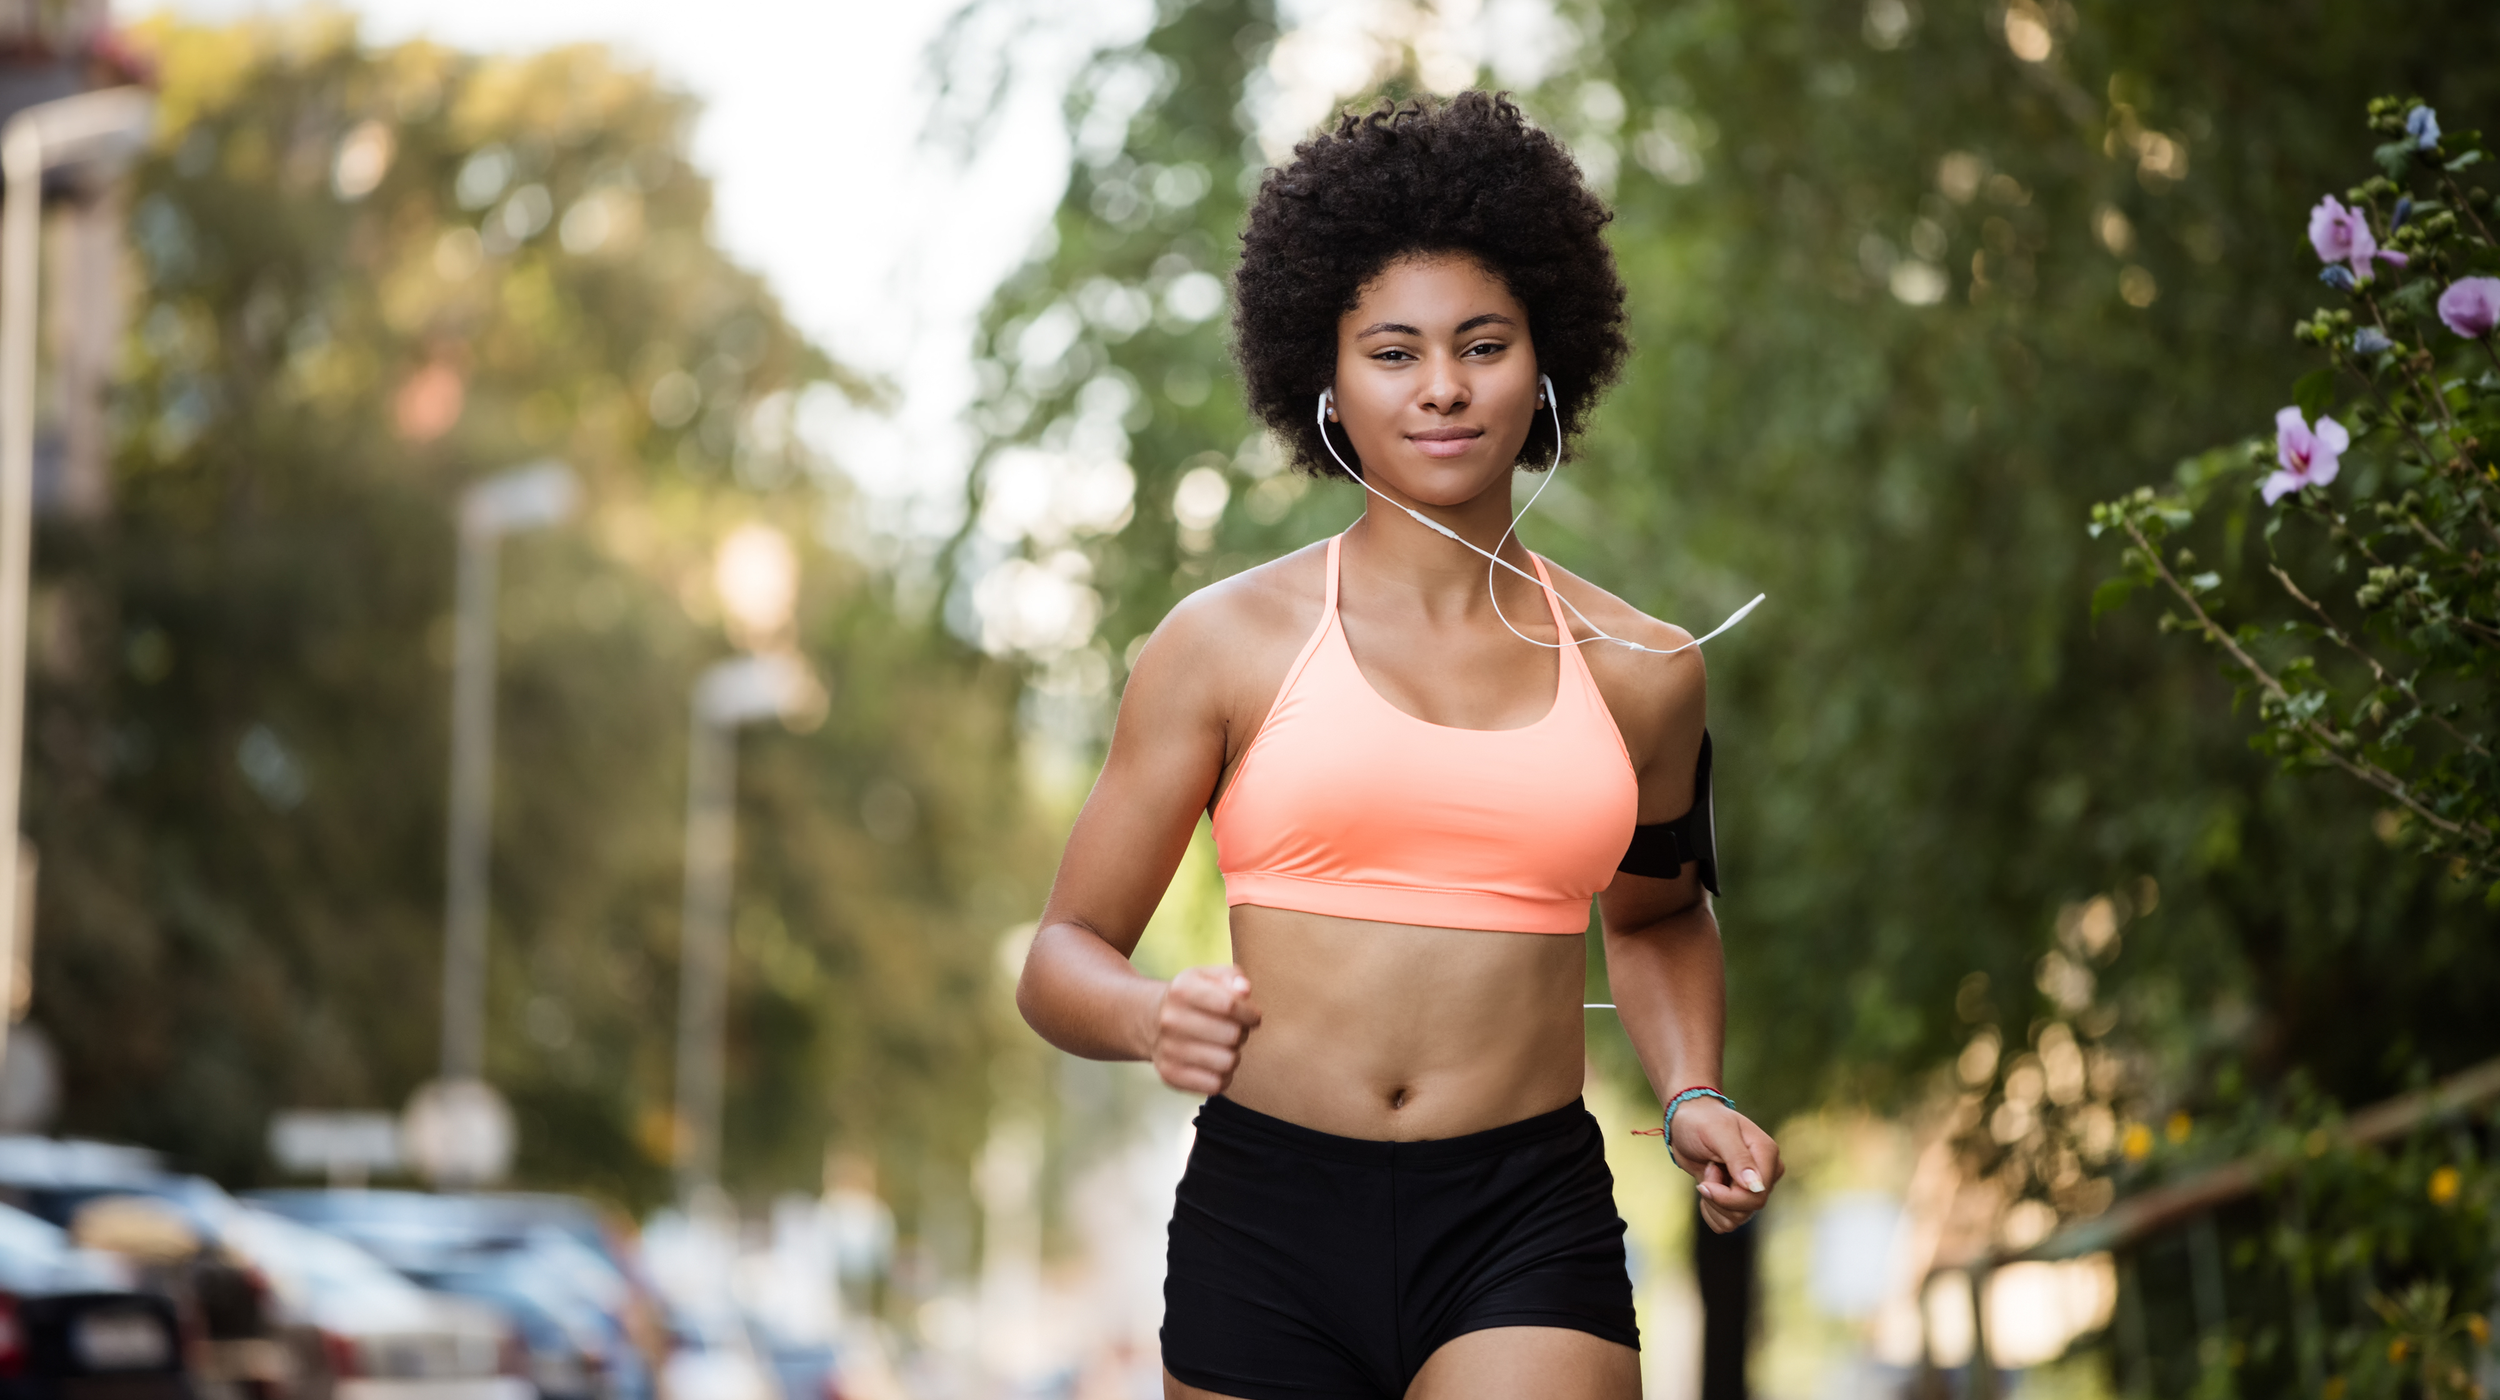 Is Cardio Better than Resistance Training for Losing Weight?